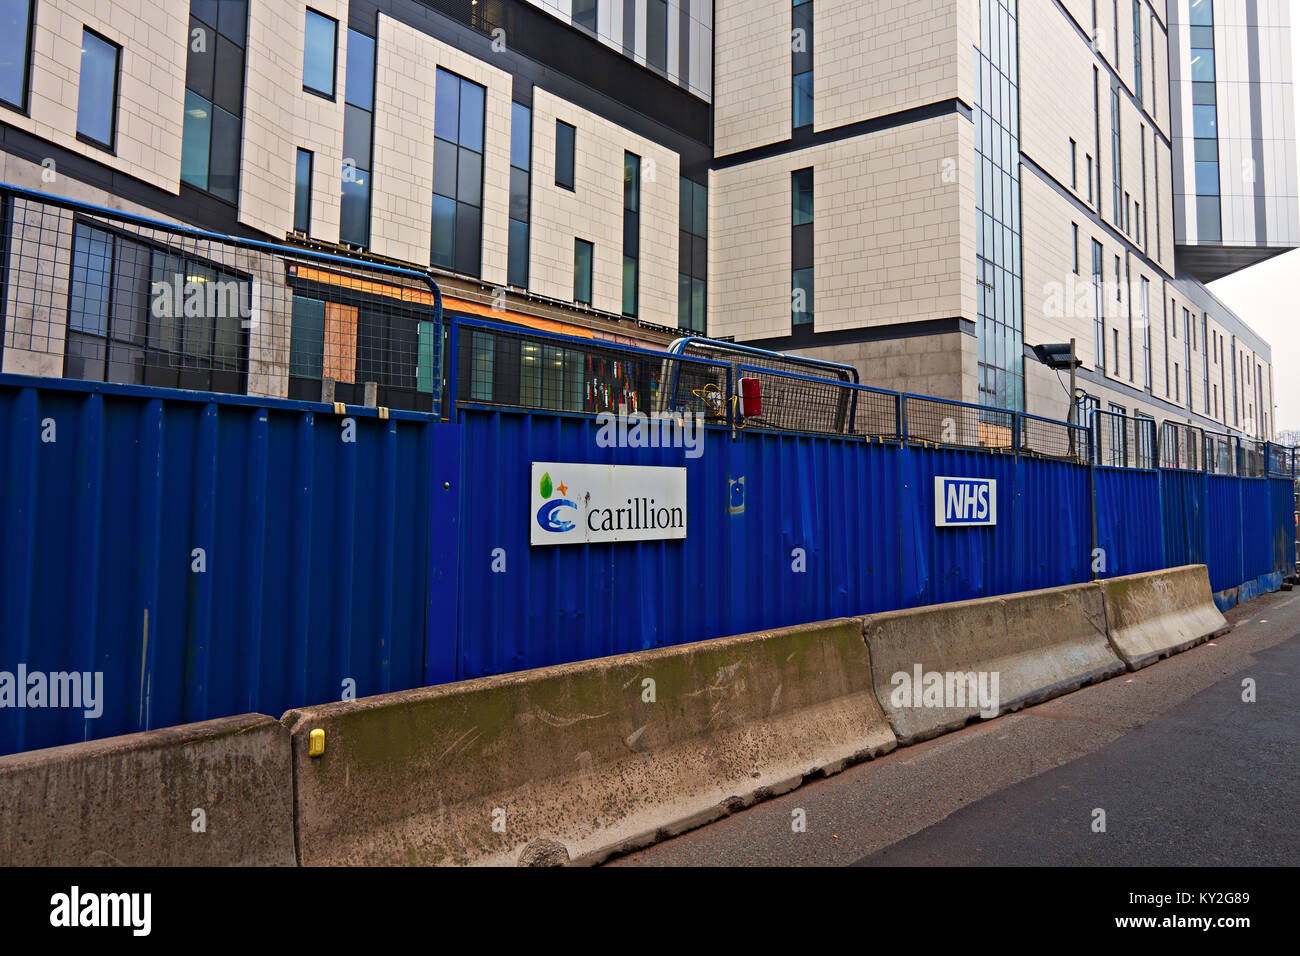 Liverpool, UK. 12th Jan, 2018. Troubled construction firm Carillion is building the £335m new Royal Liverpool Hospital, Stock Photo